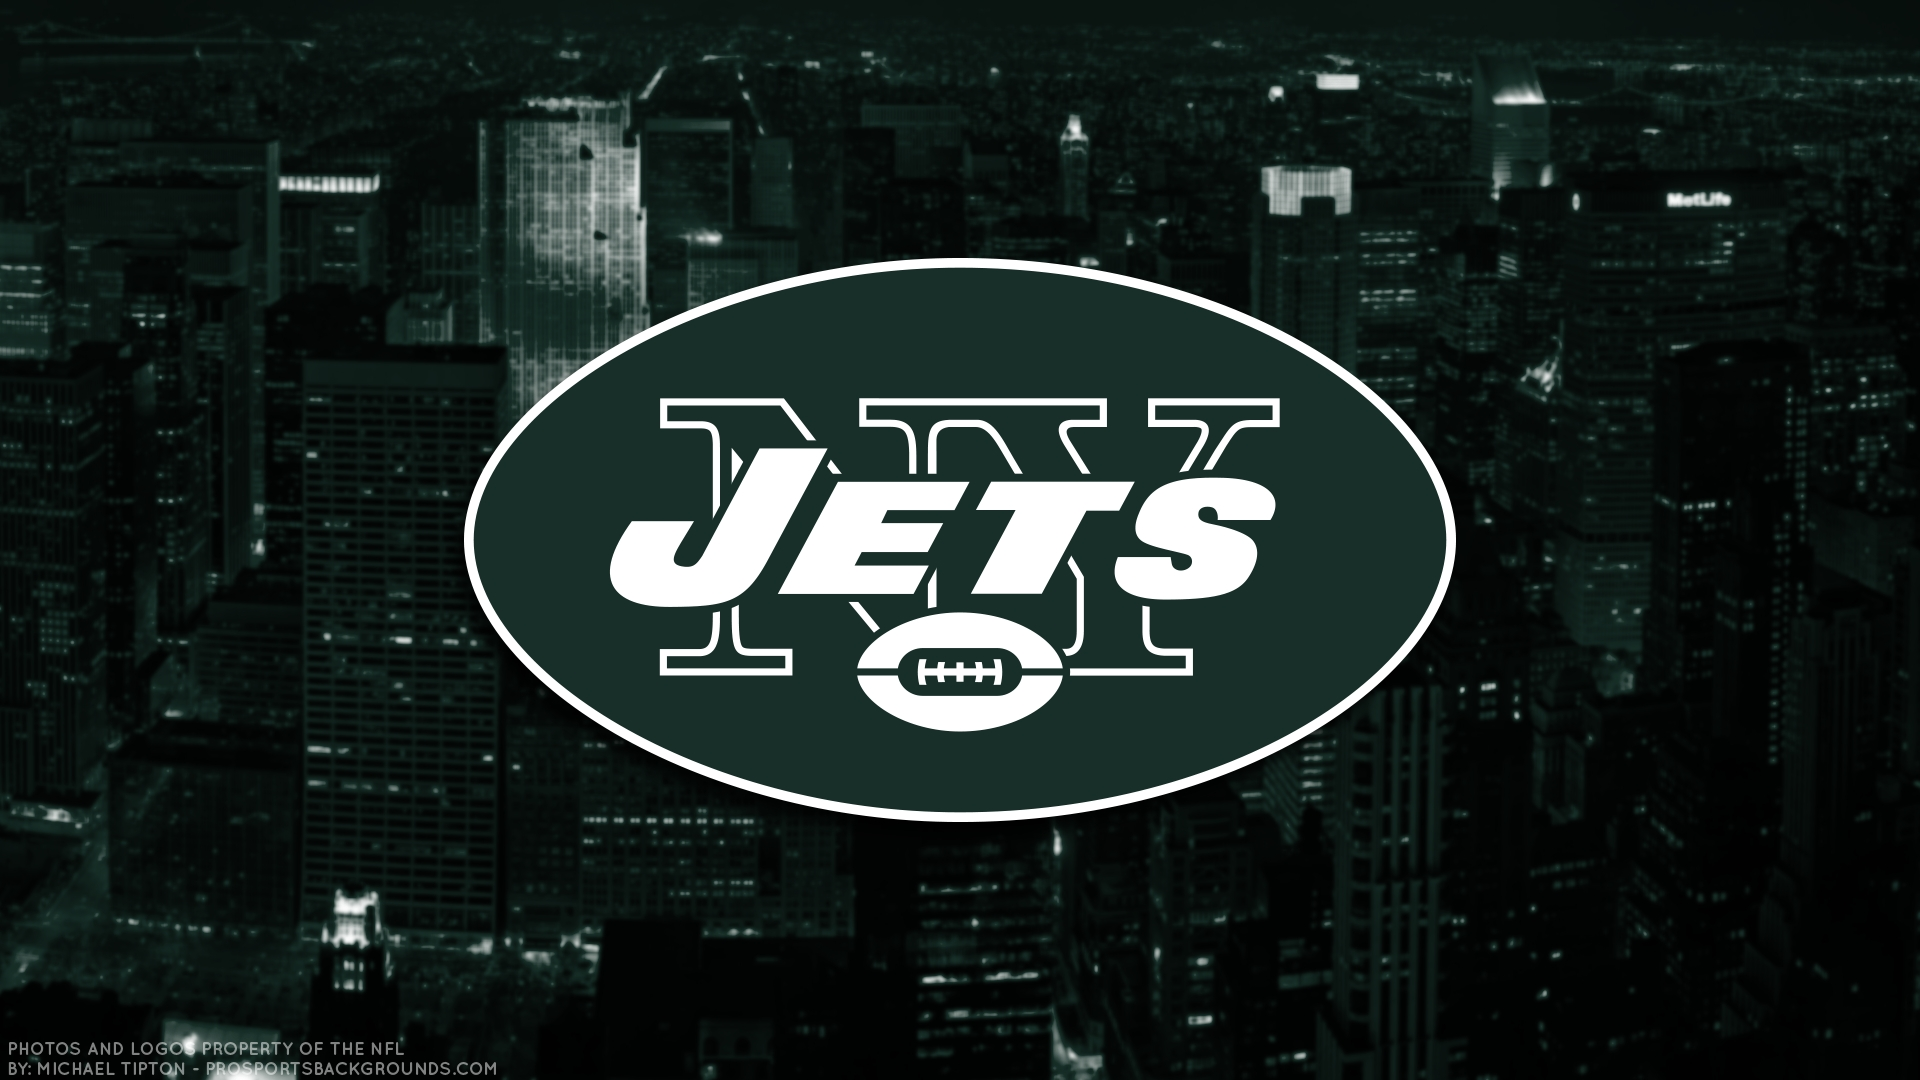 new york jets pc iphone backgrounds wallpaper of computer hd pics